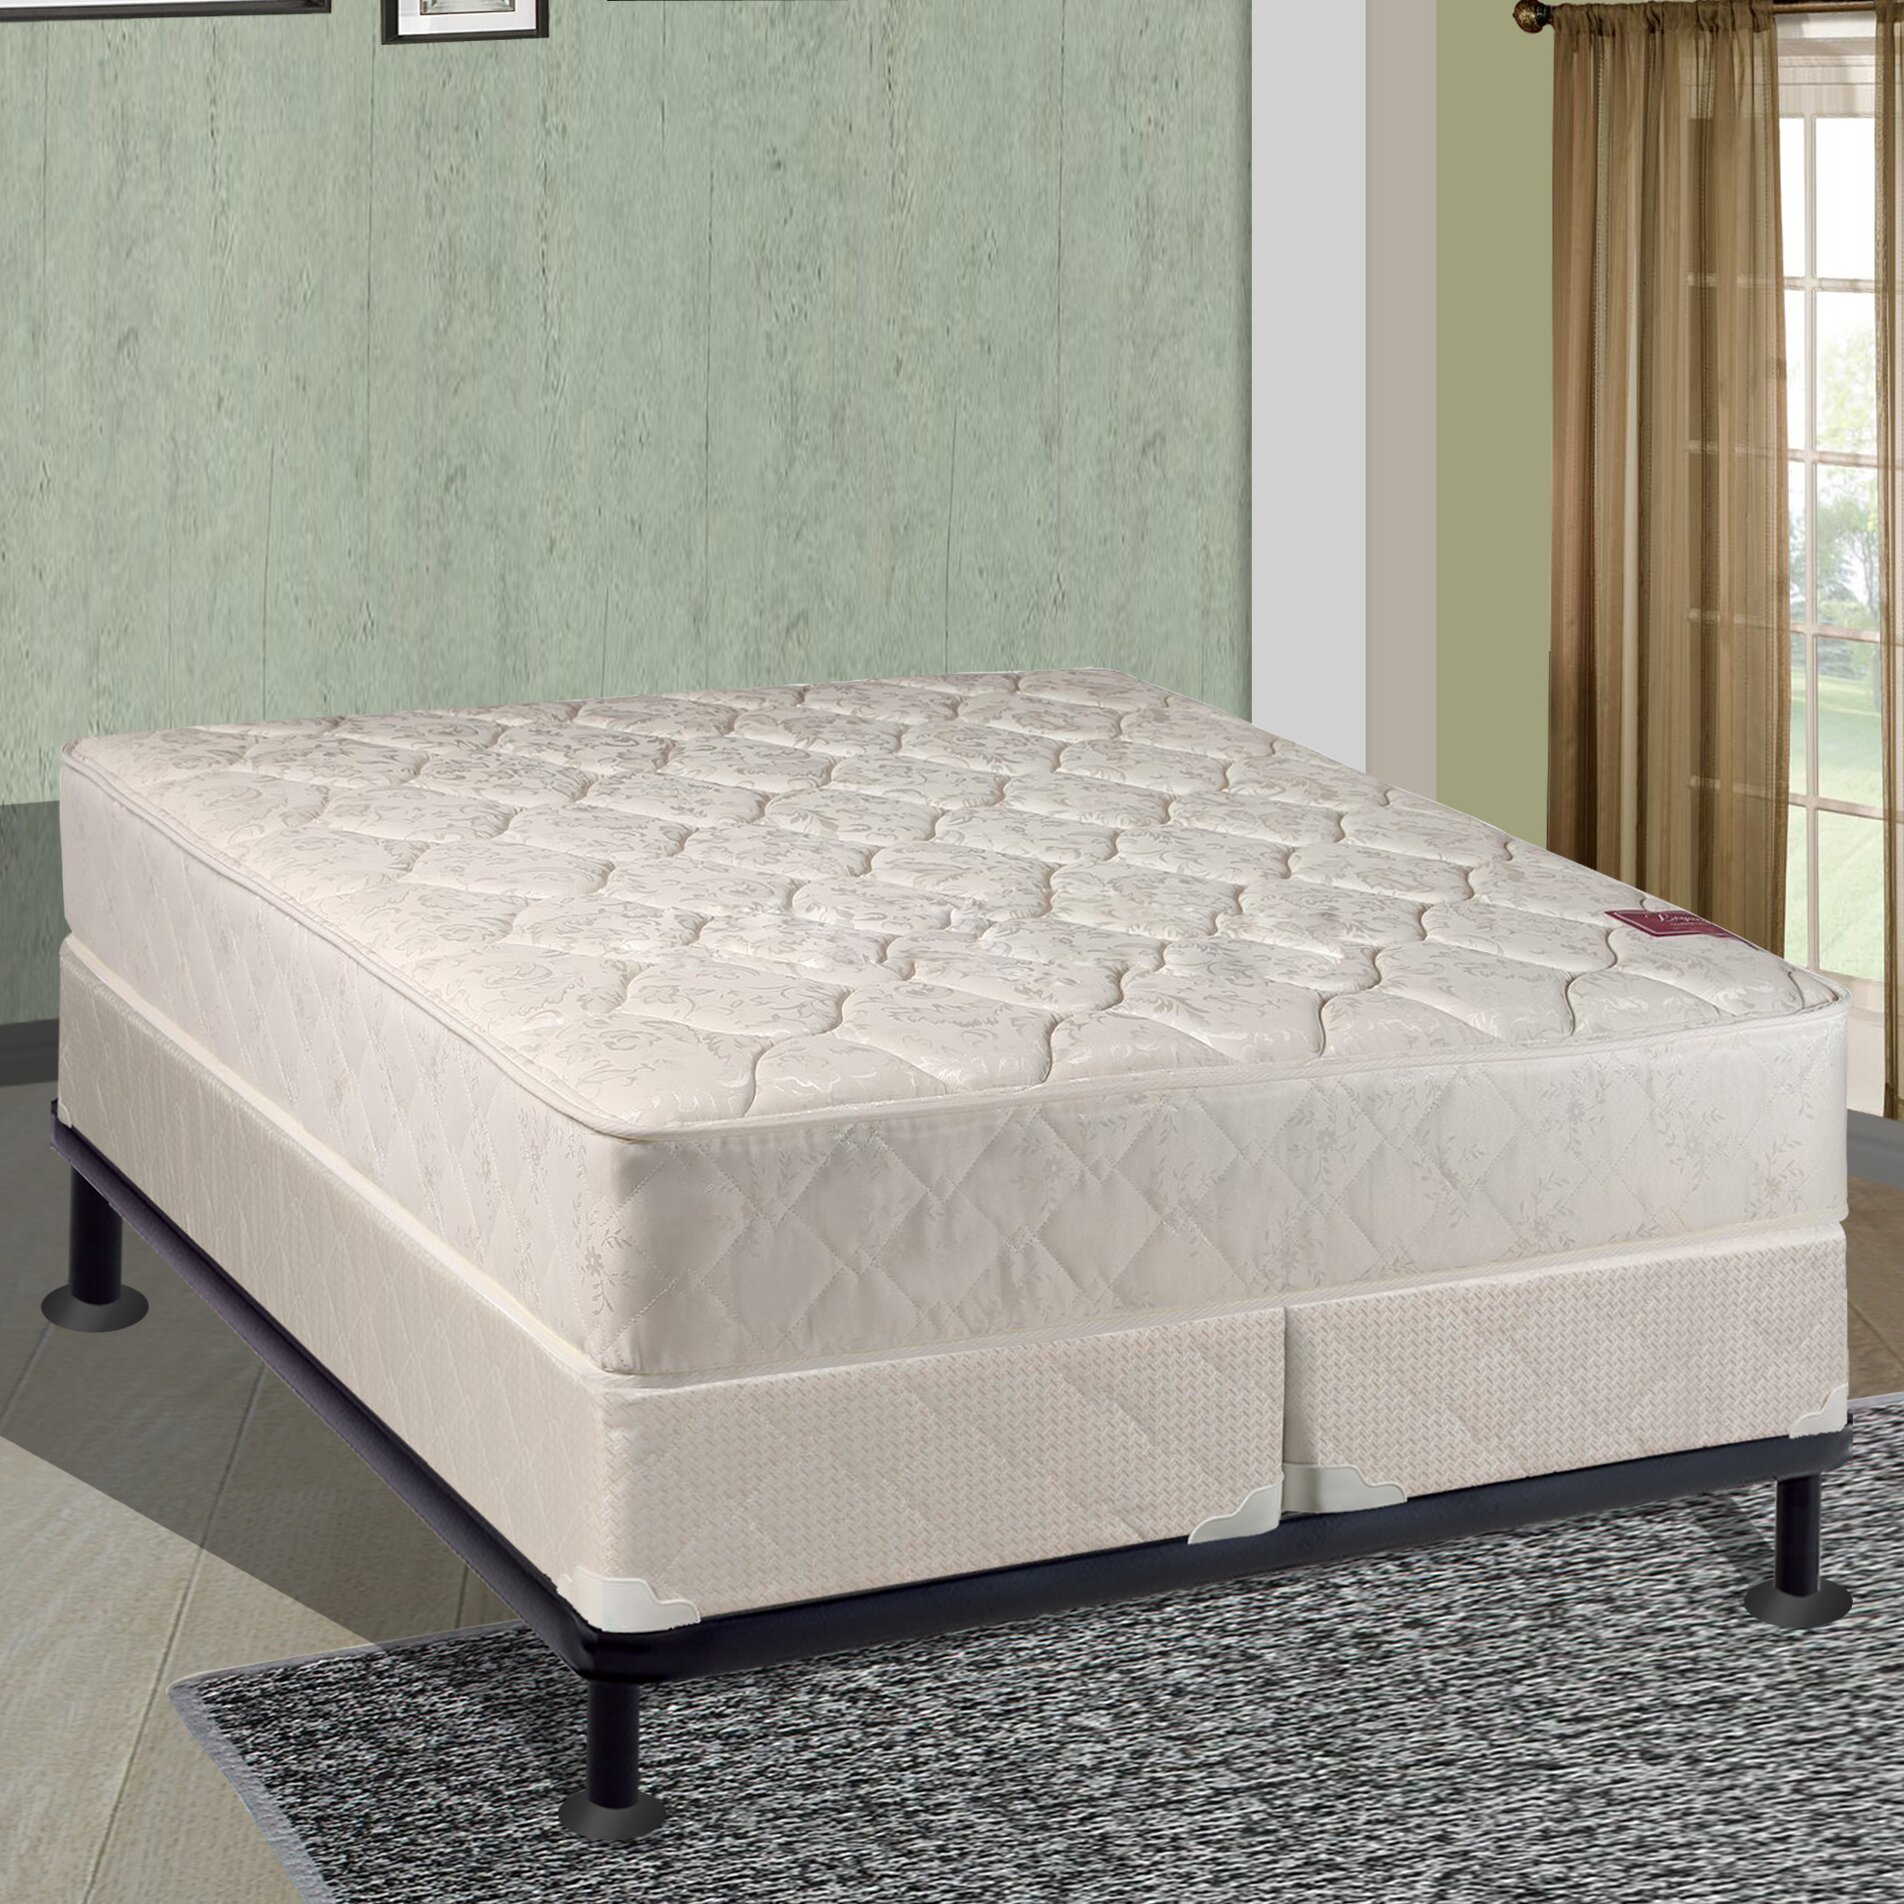 spinal solution 17 firm mattress and box spring reviews wayfair. Black Bedroom Furniture Sets. Home Design Ideas